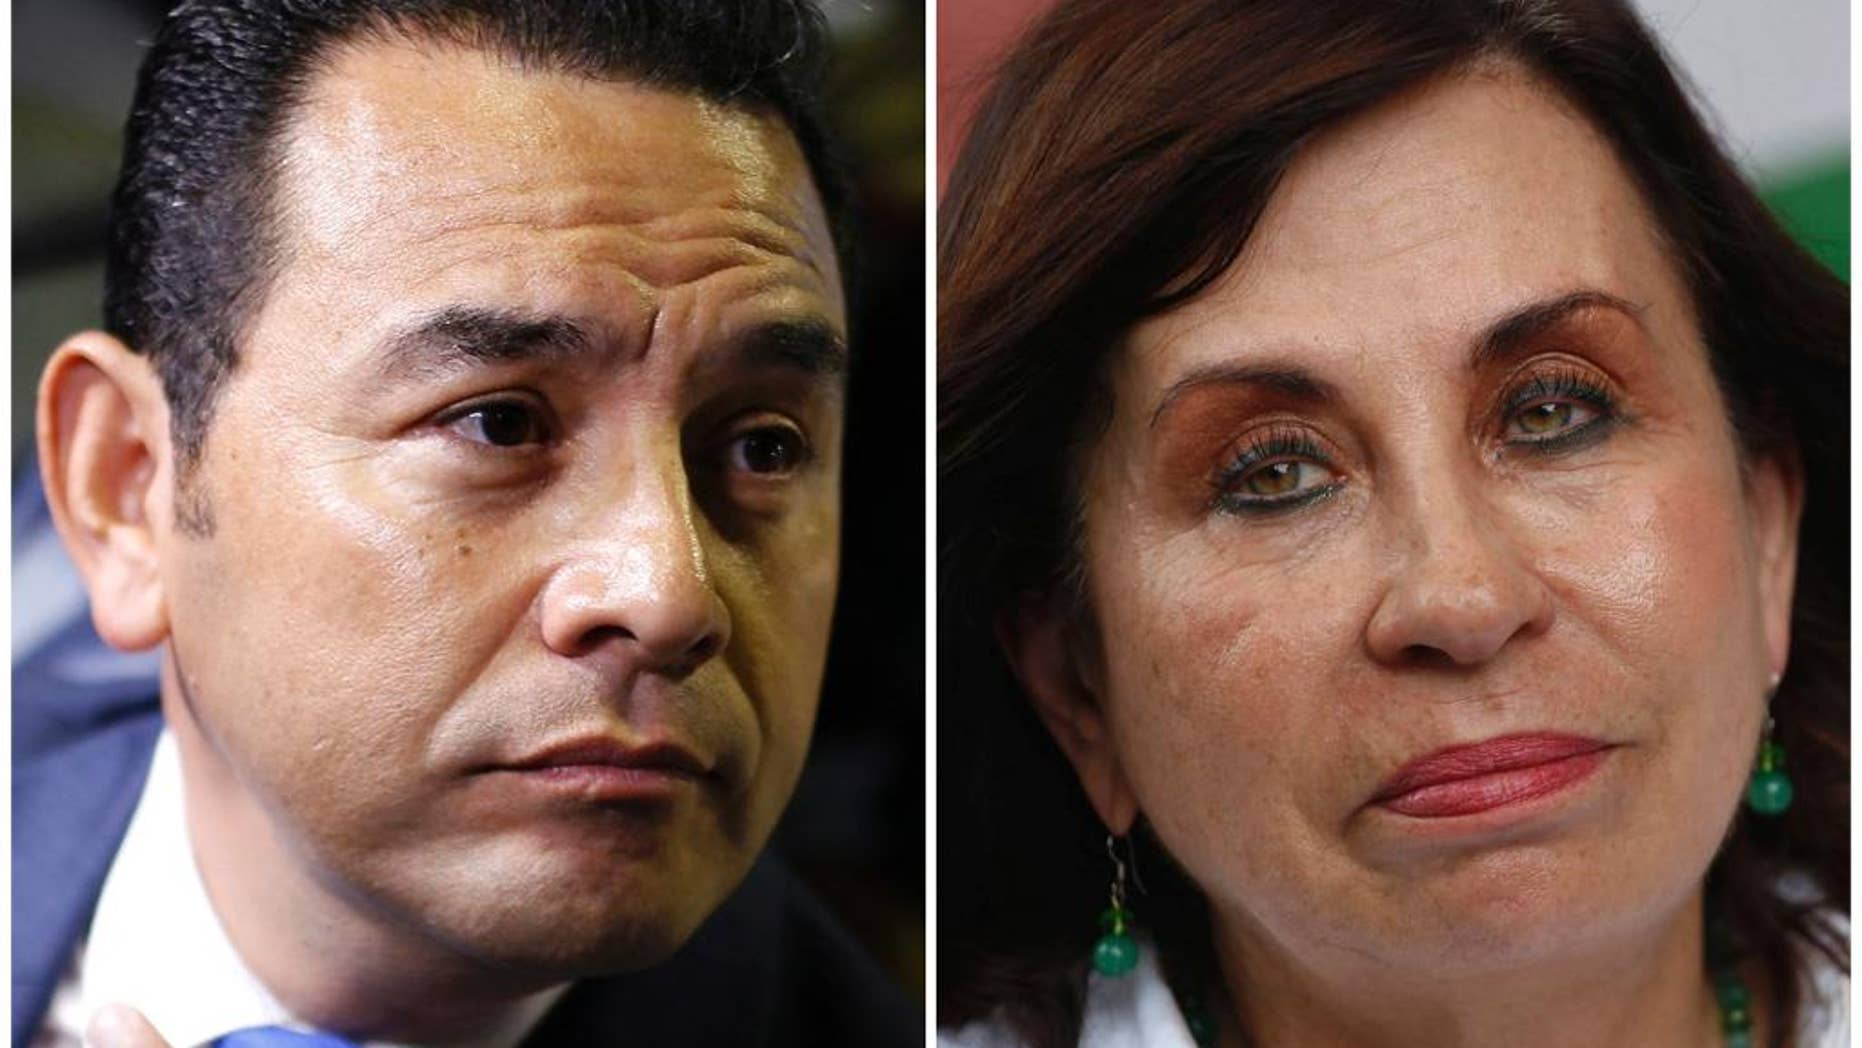 FILE - This combination of two file photos shows, at left, presidential frontrunner candidate Jimmy Morales, of the National Front of Convergence party, at a Sept. 7, 2015 press conference in Guatemala City, and Sandra Torres, National Unity of Hope presidential candidate, at an Aug. 29, 2015 campaign rally in Escuintla, Guatemala. The country's electoral tribunal has declared on Tuesday, Sept. 16, 2015, that Morales a former television comedian and Torres a former first lady are the top two finishers in the Sept. 6 presidential vote. The two will compete in the Oct. 25 runoff to be the next president of Guatemala. (AP Photo/Luis Soto, File)